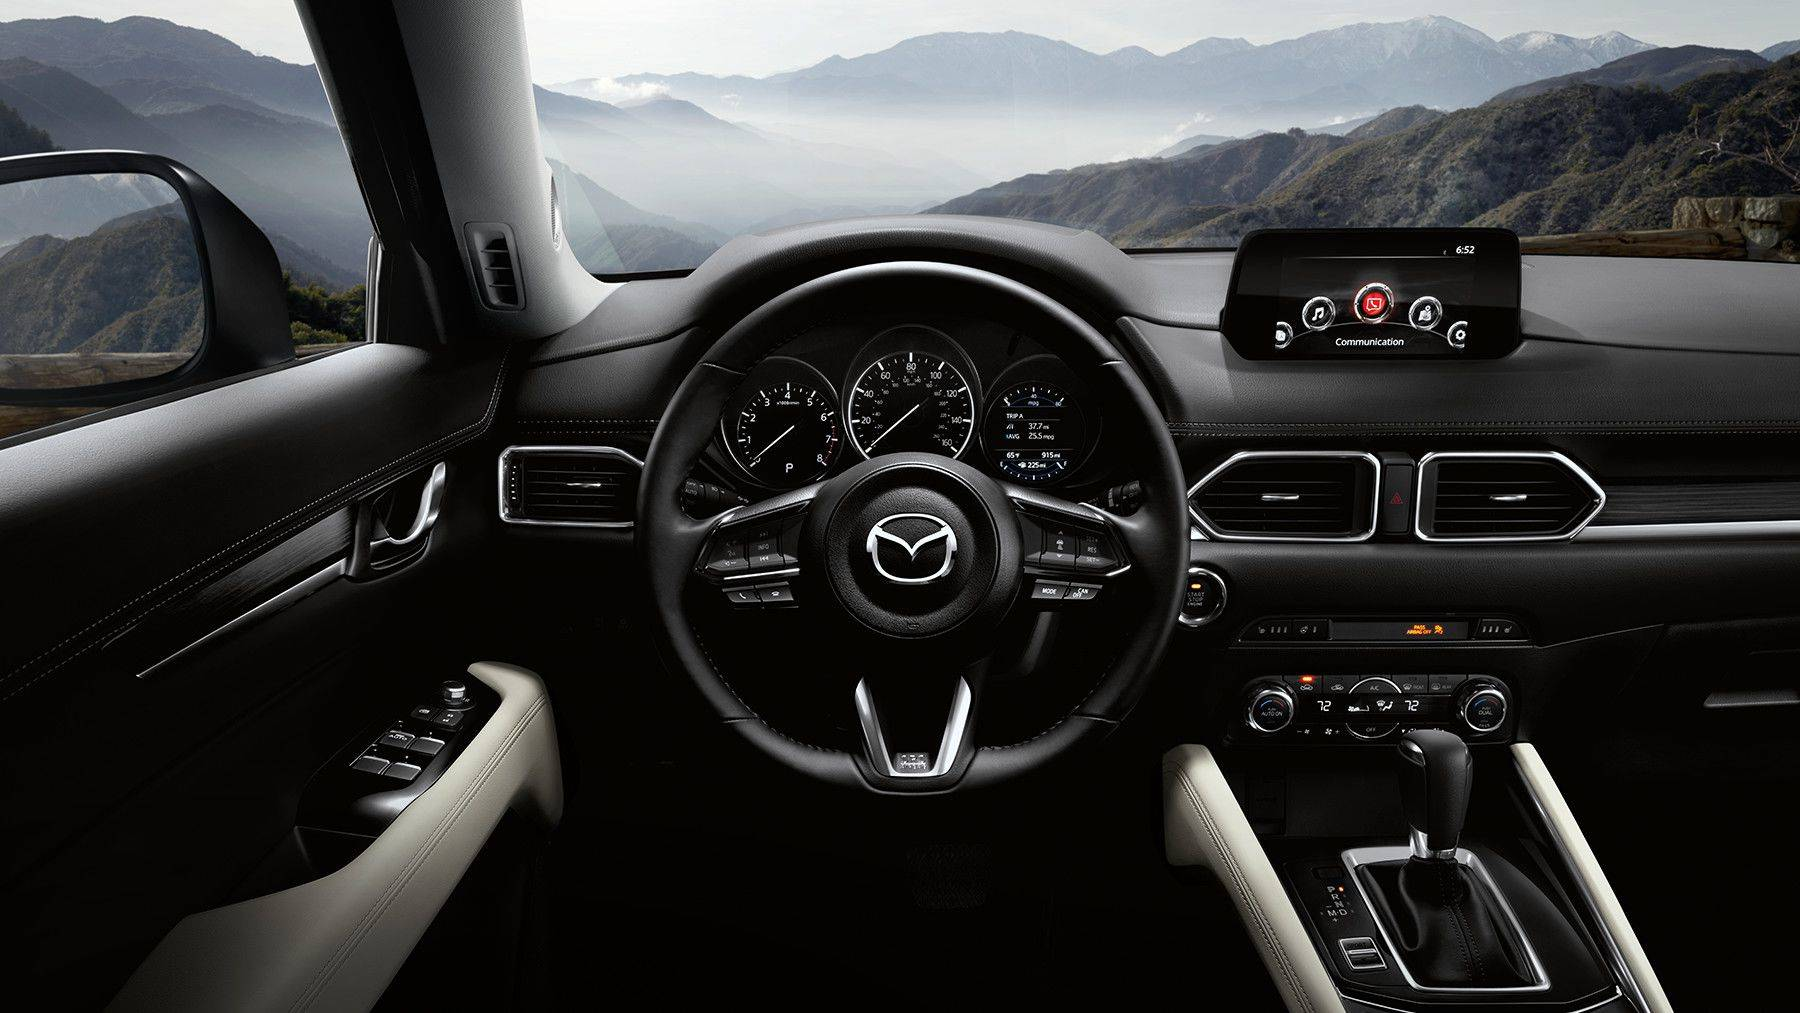 2018 Mazda Cx 5 Leasing In Gaithersburg Md Audio Wiring Diagram Take Control Of The Road